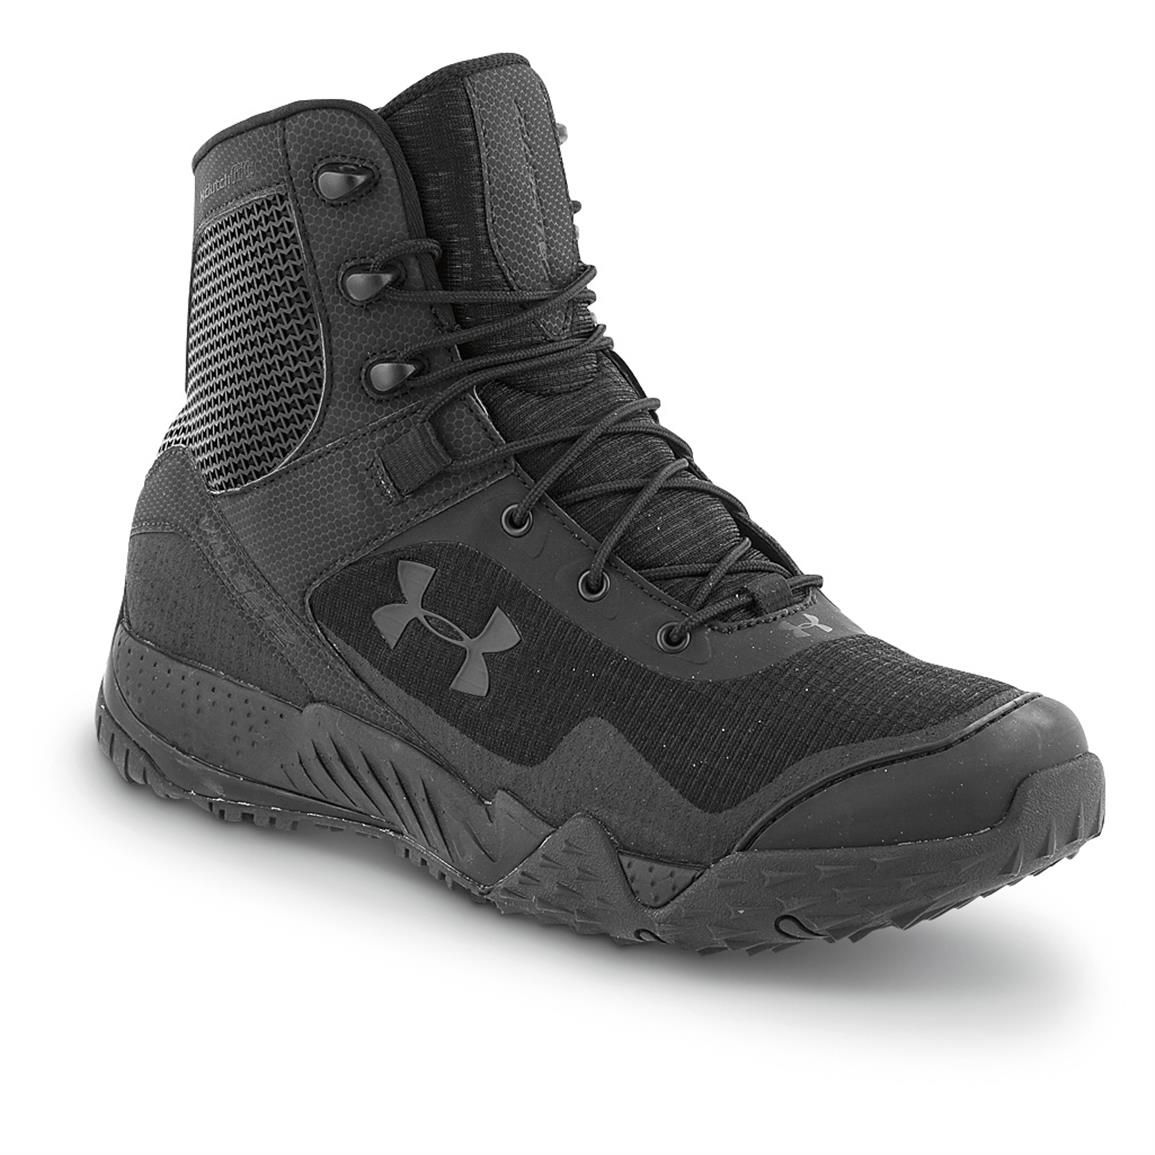 Men's Under Armour® Valsetz Tactical RTS Tactical Boots, Black. These are  way more